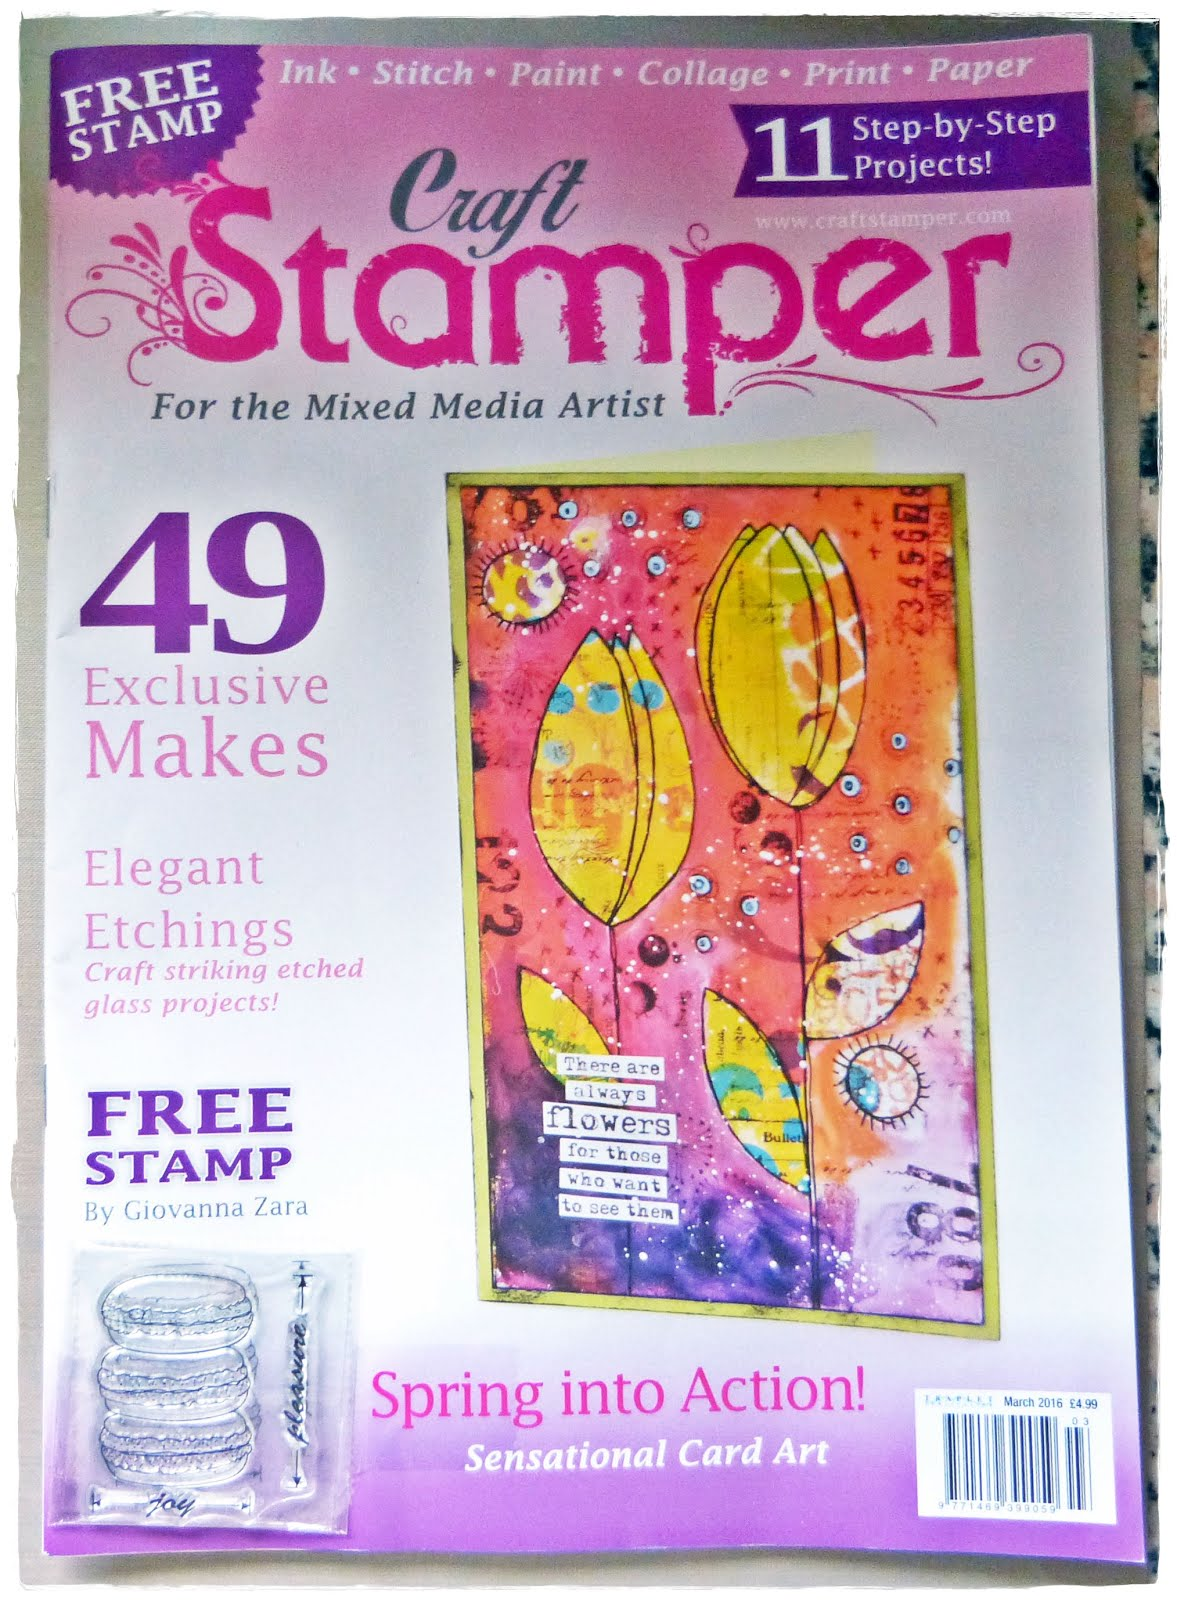 Published Craft Stamper Magazine